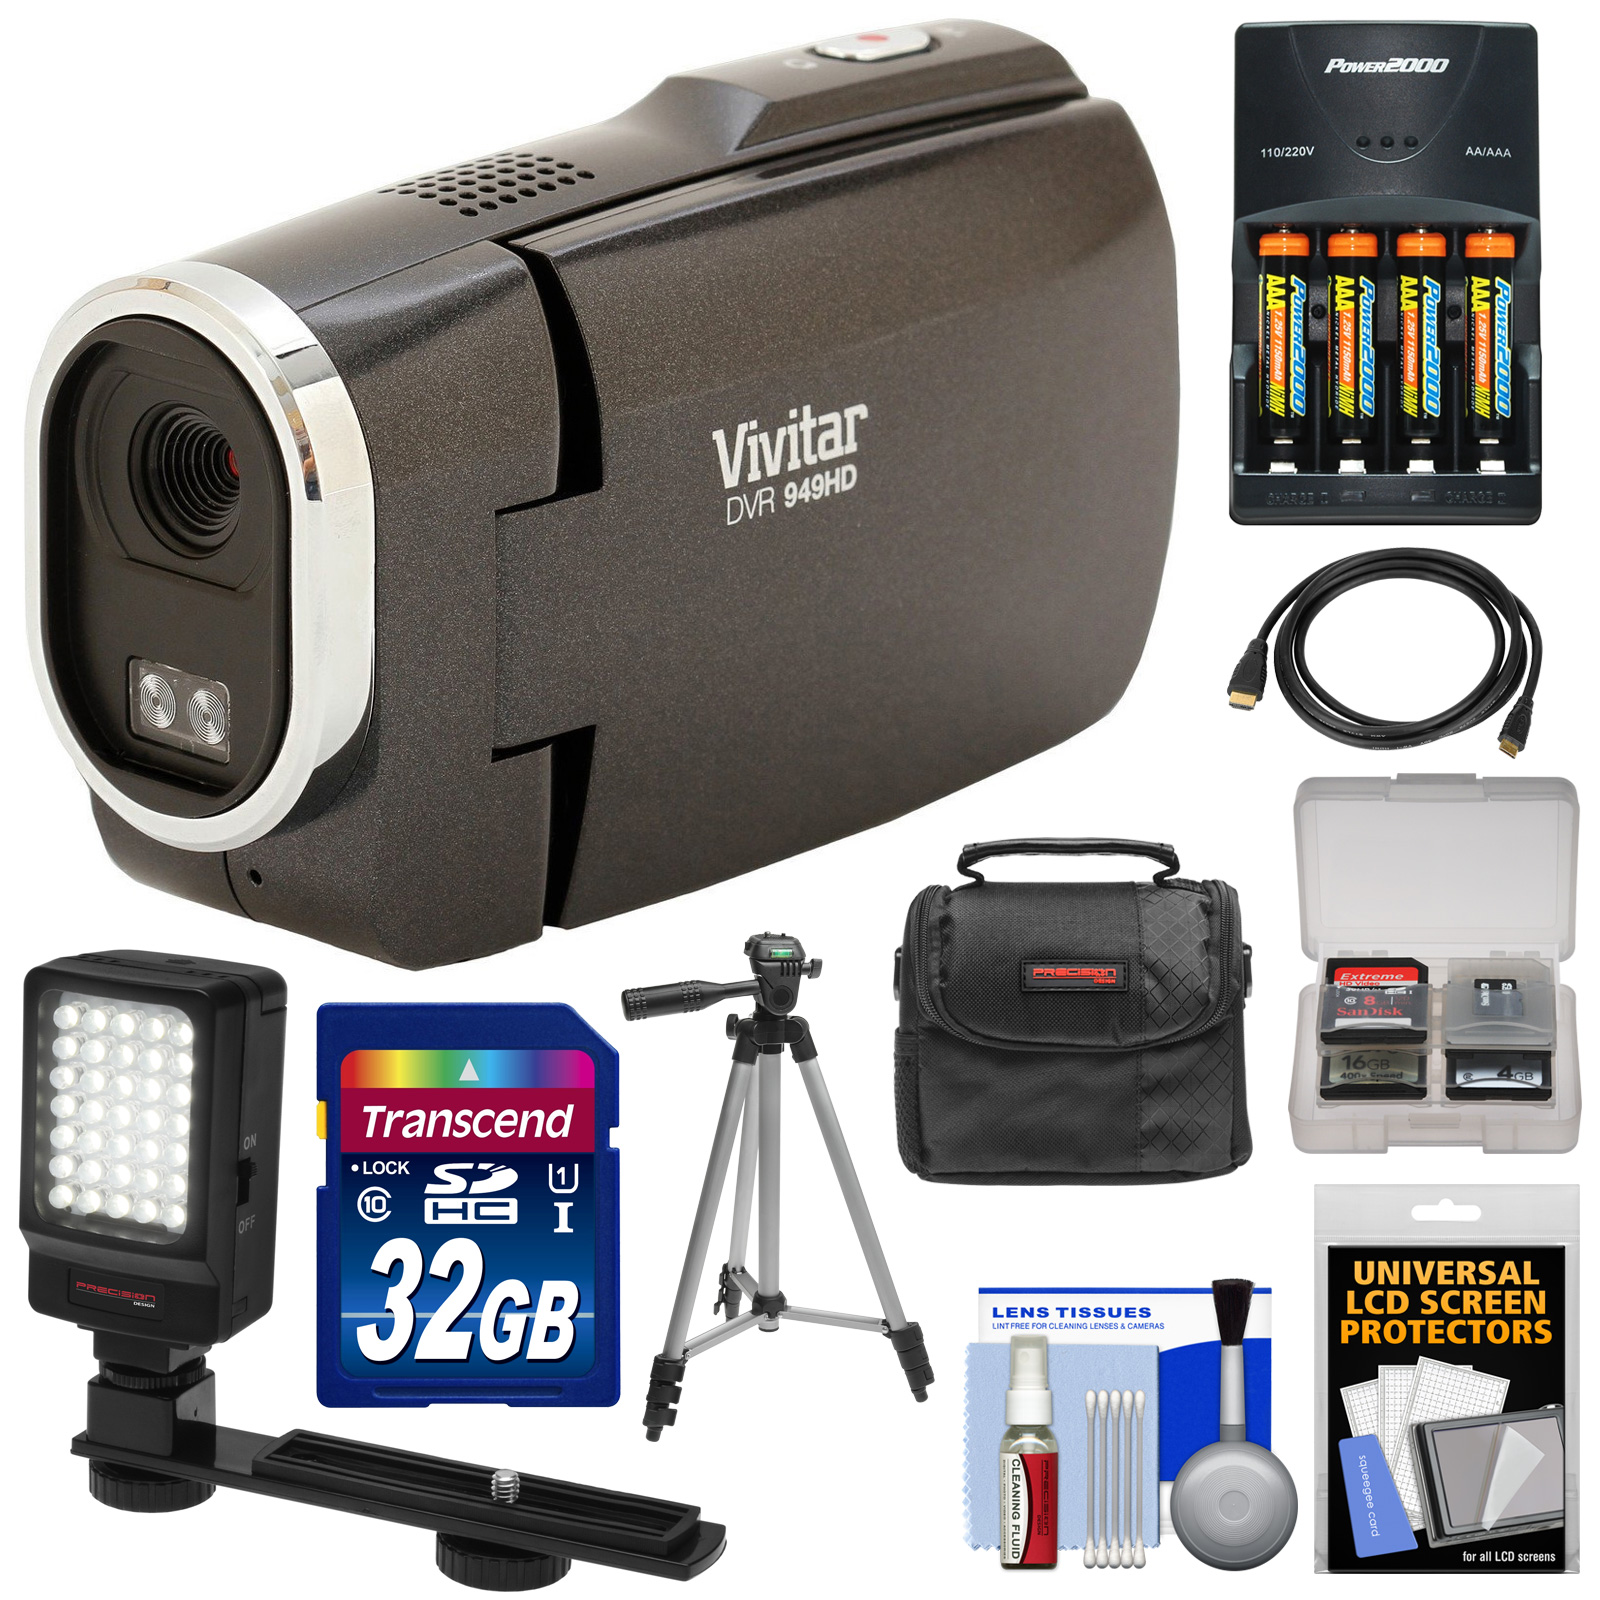 Vivitar DVR949HD 1080p HD Video Camera Camcorder (Black) with 32GB Card + Batteries & Charger + Case + Tripod + LED Video Light + Kit